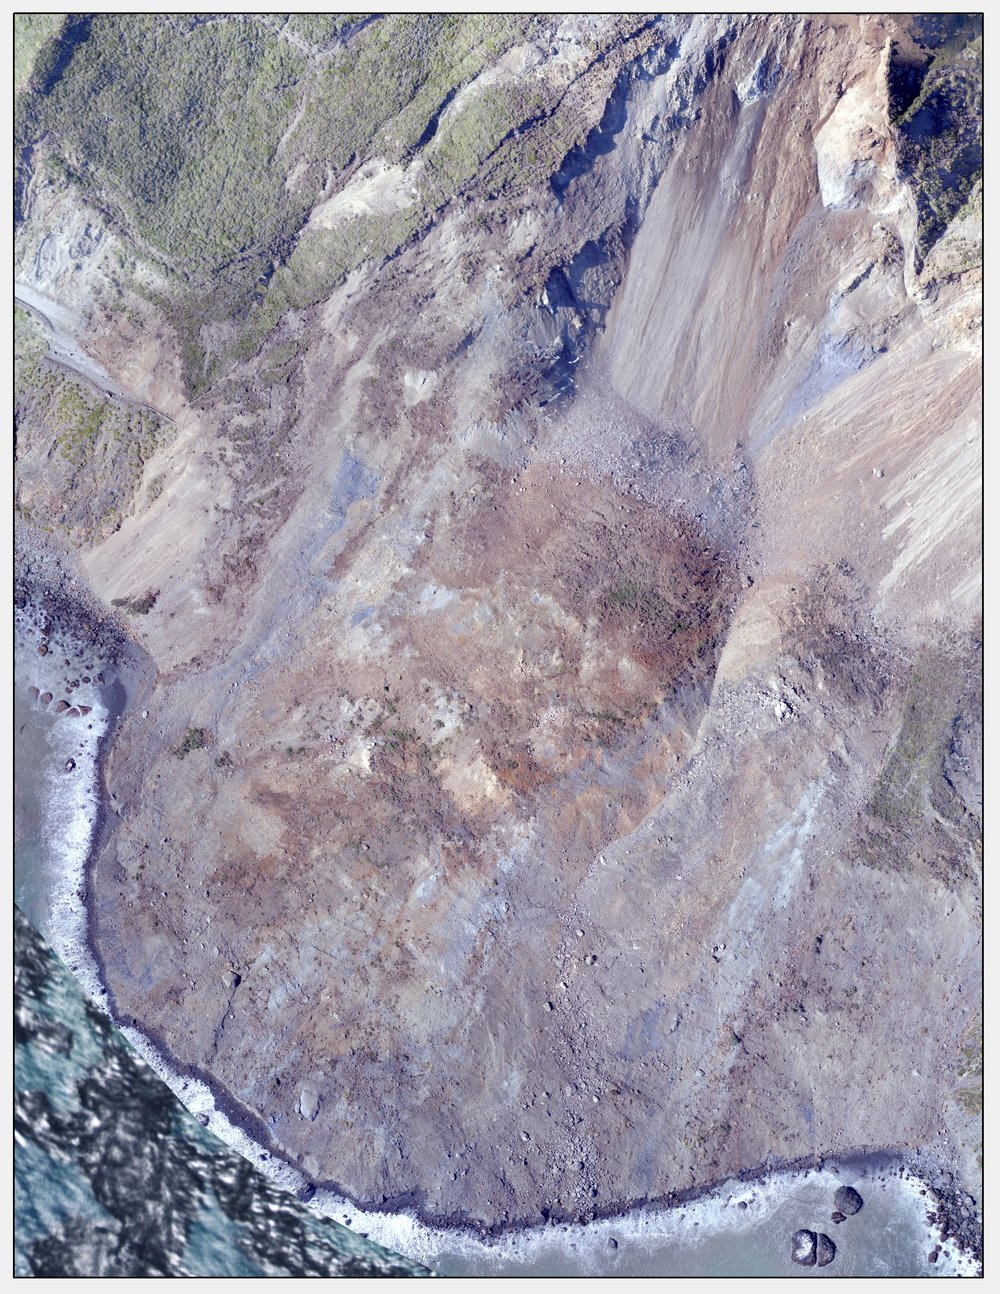 State Route 1 at Mud Creek, Monterey County, California, May 24th, 2017.      Major slope failure has occurred; approximately 2,230 feet of SR-1 is buried. No reconstruction work has begun as the landform is still undergoing settling motion.